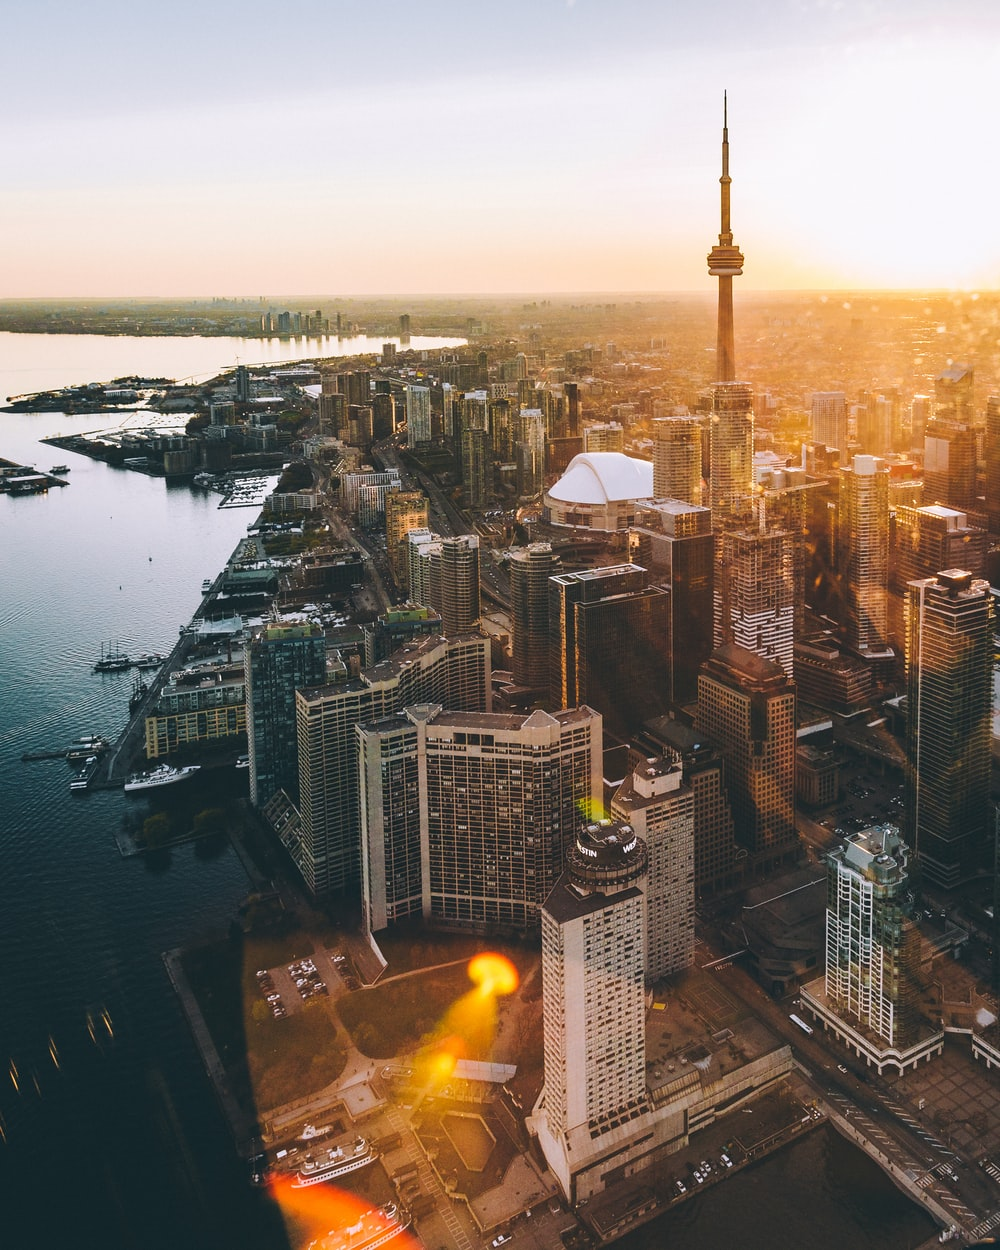 aerial photo of city during golden hour